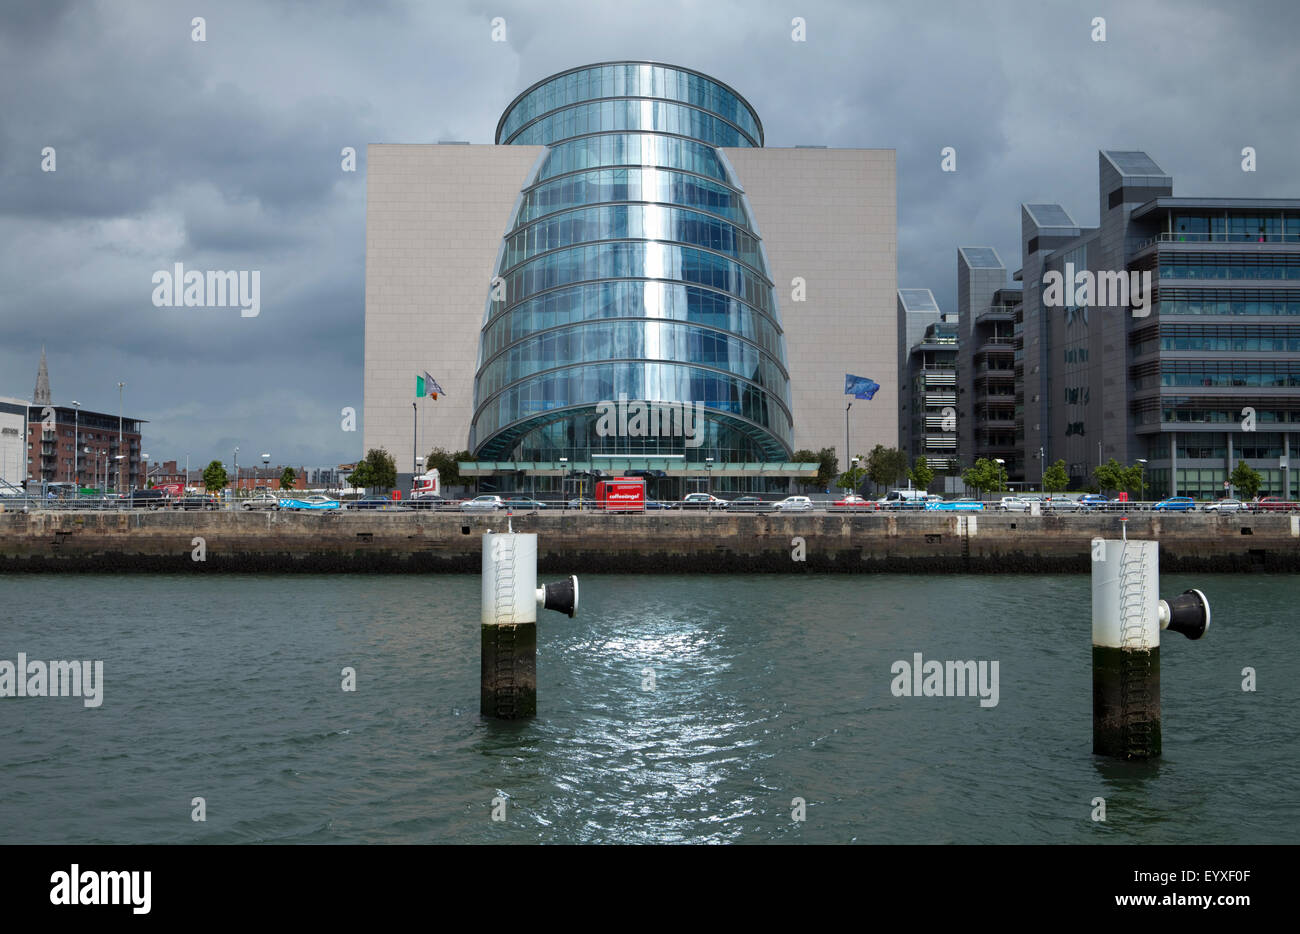 The National Irish Conference Centre overlooks the River Liffey at Spencer Dock, North Wall Quay, Dublin Docklands, - Stock Image